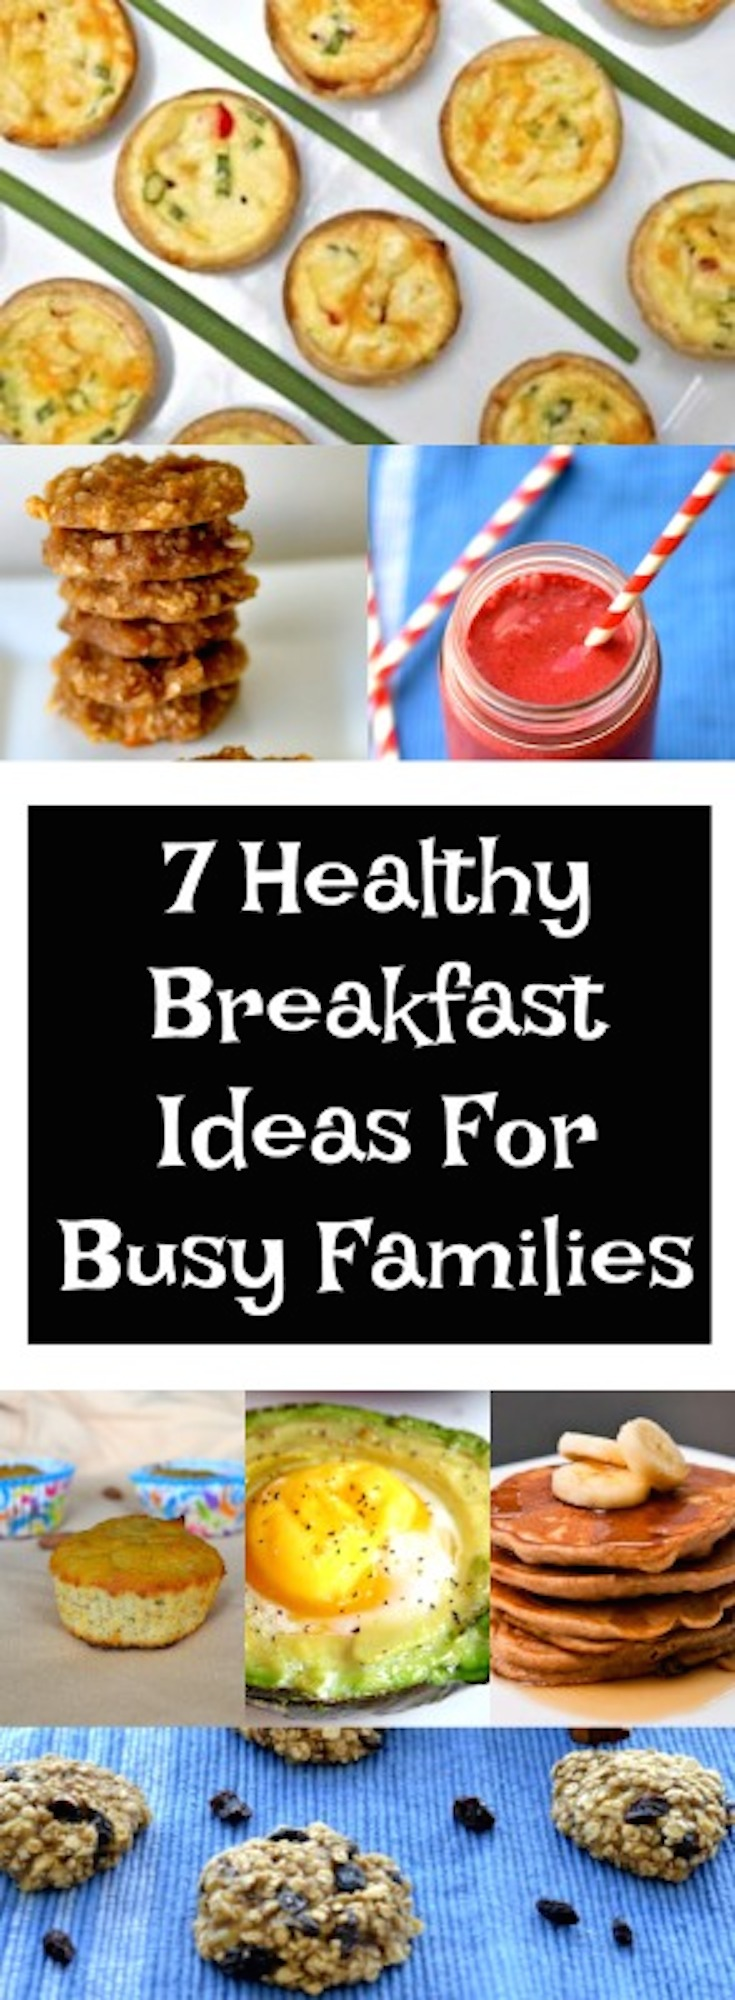 7 healthy breakfast ideas for busy families